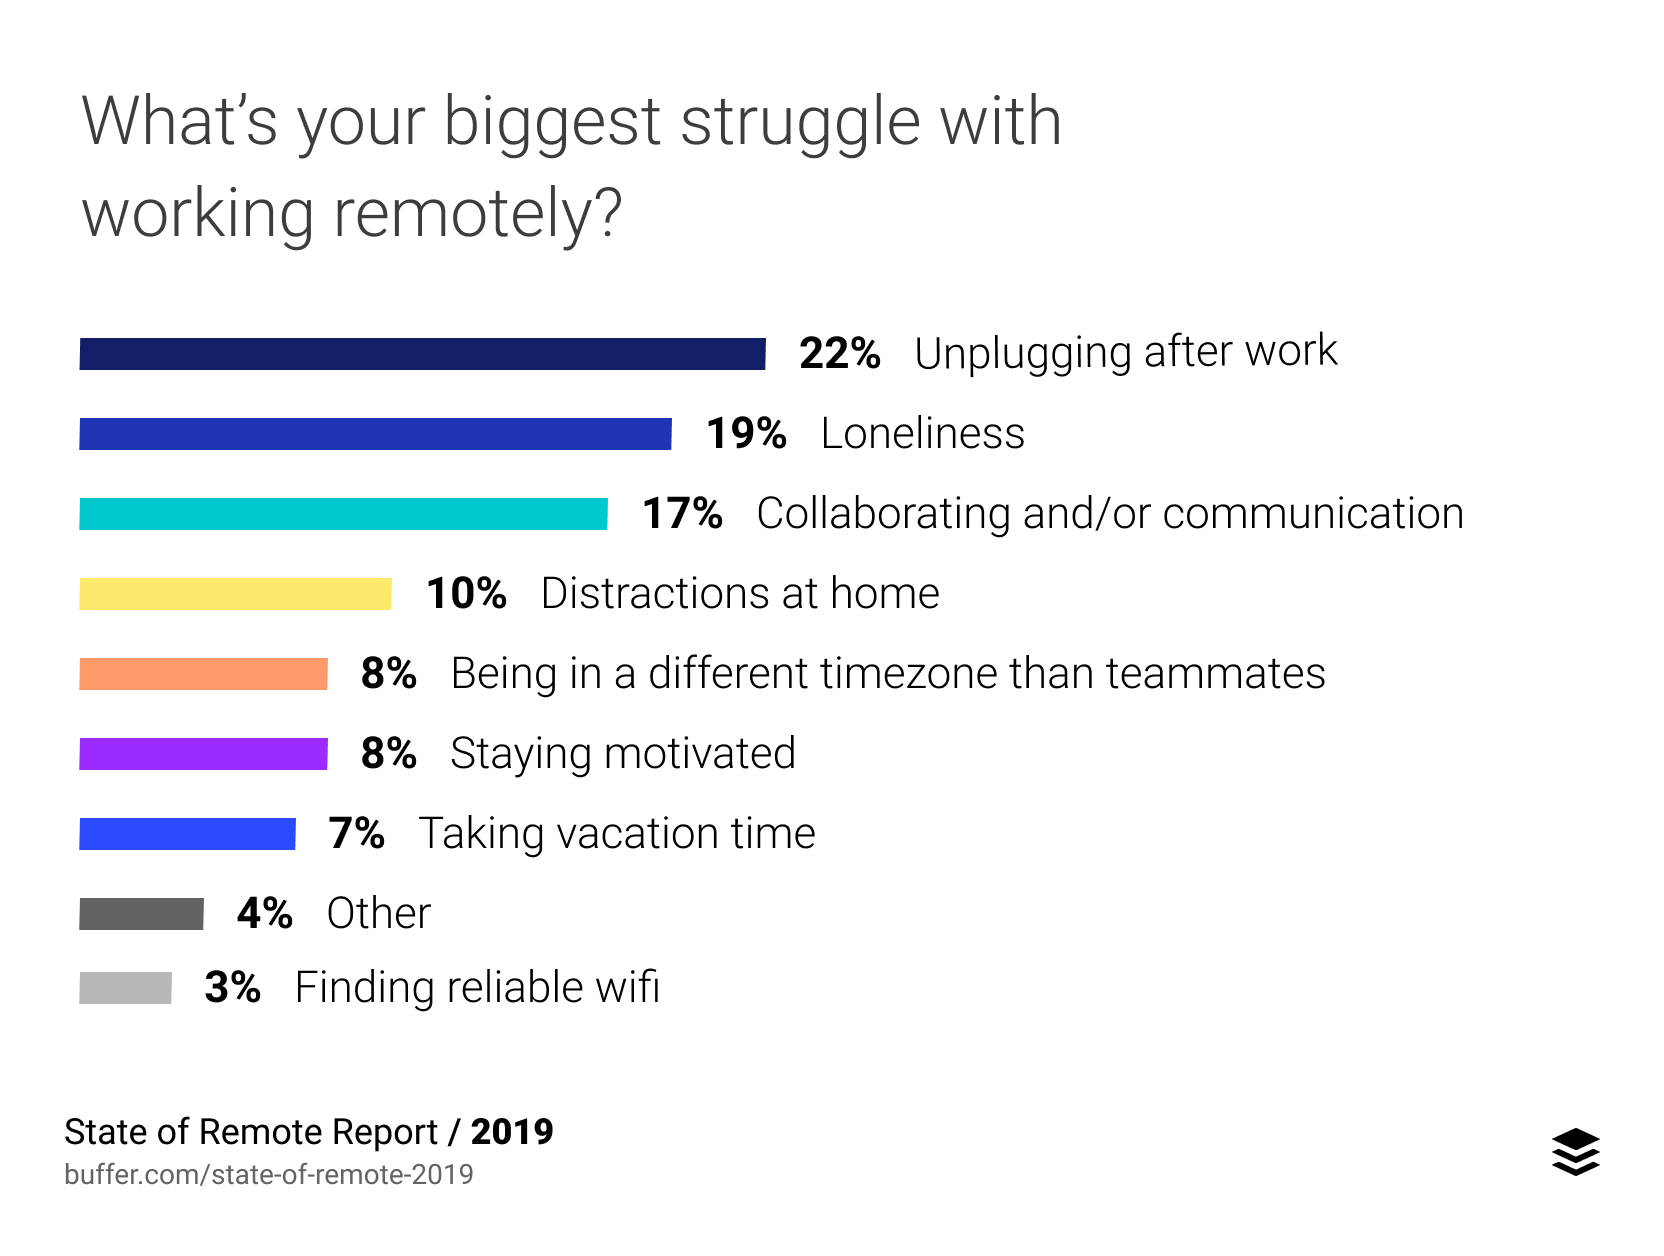 Bar graph showing the top nine biggest struggles people face when working remotely.